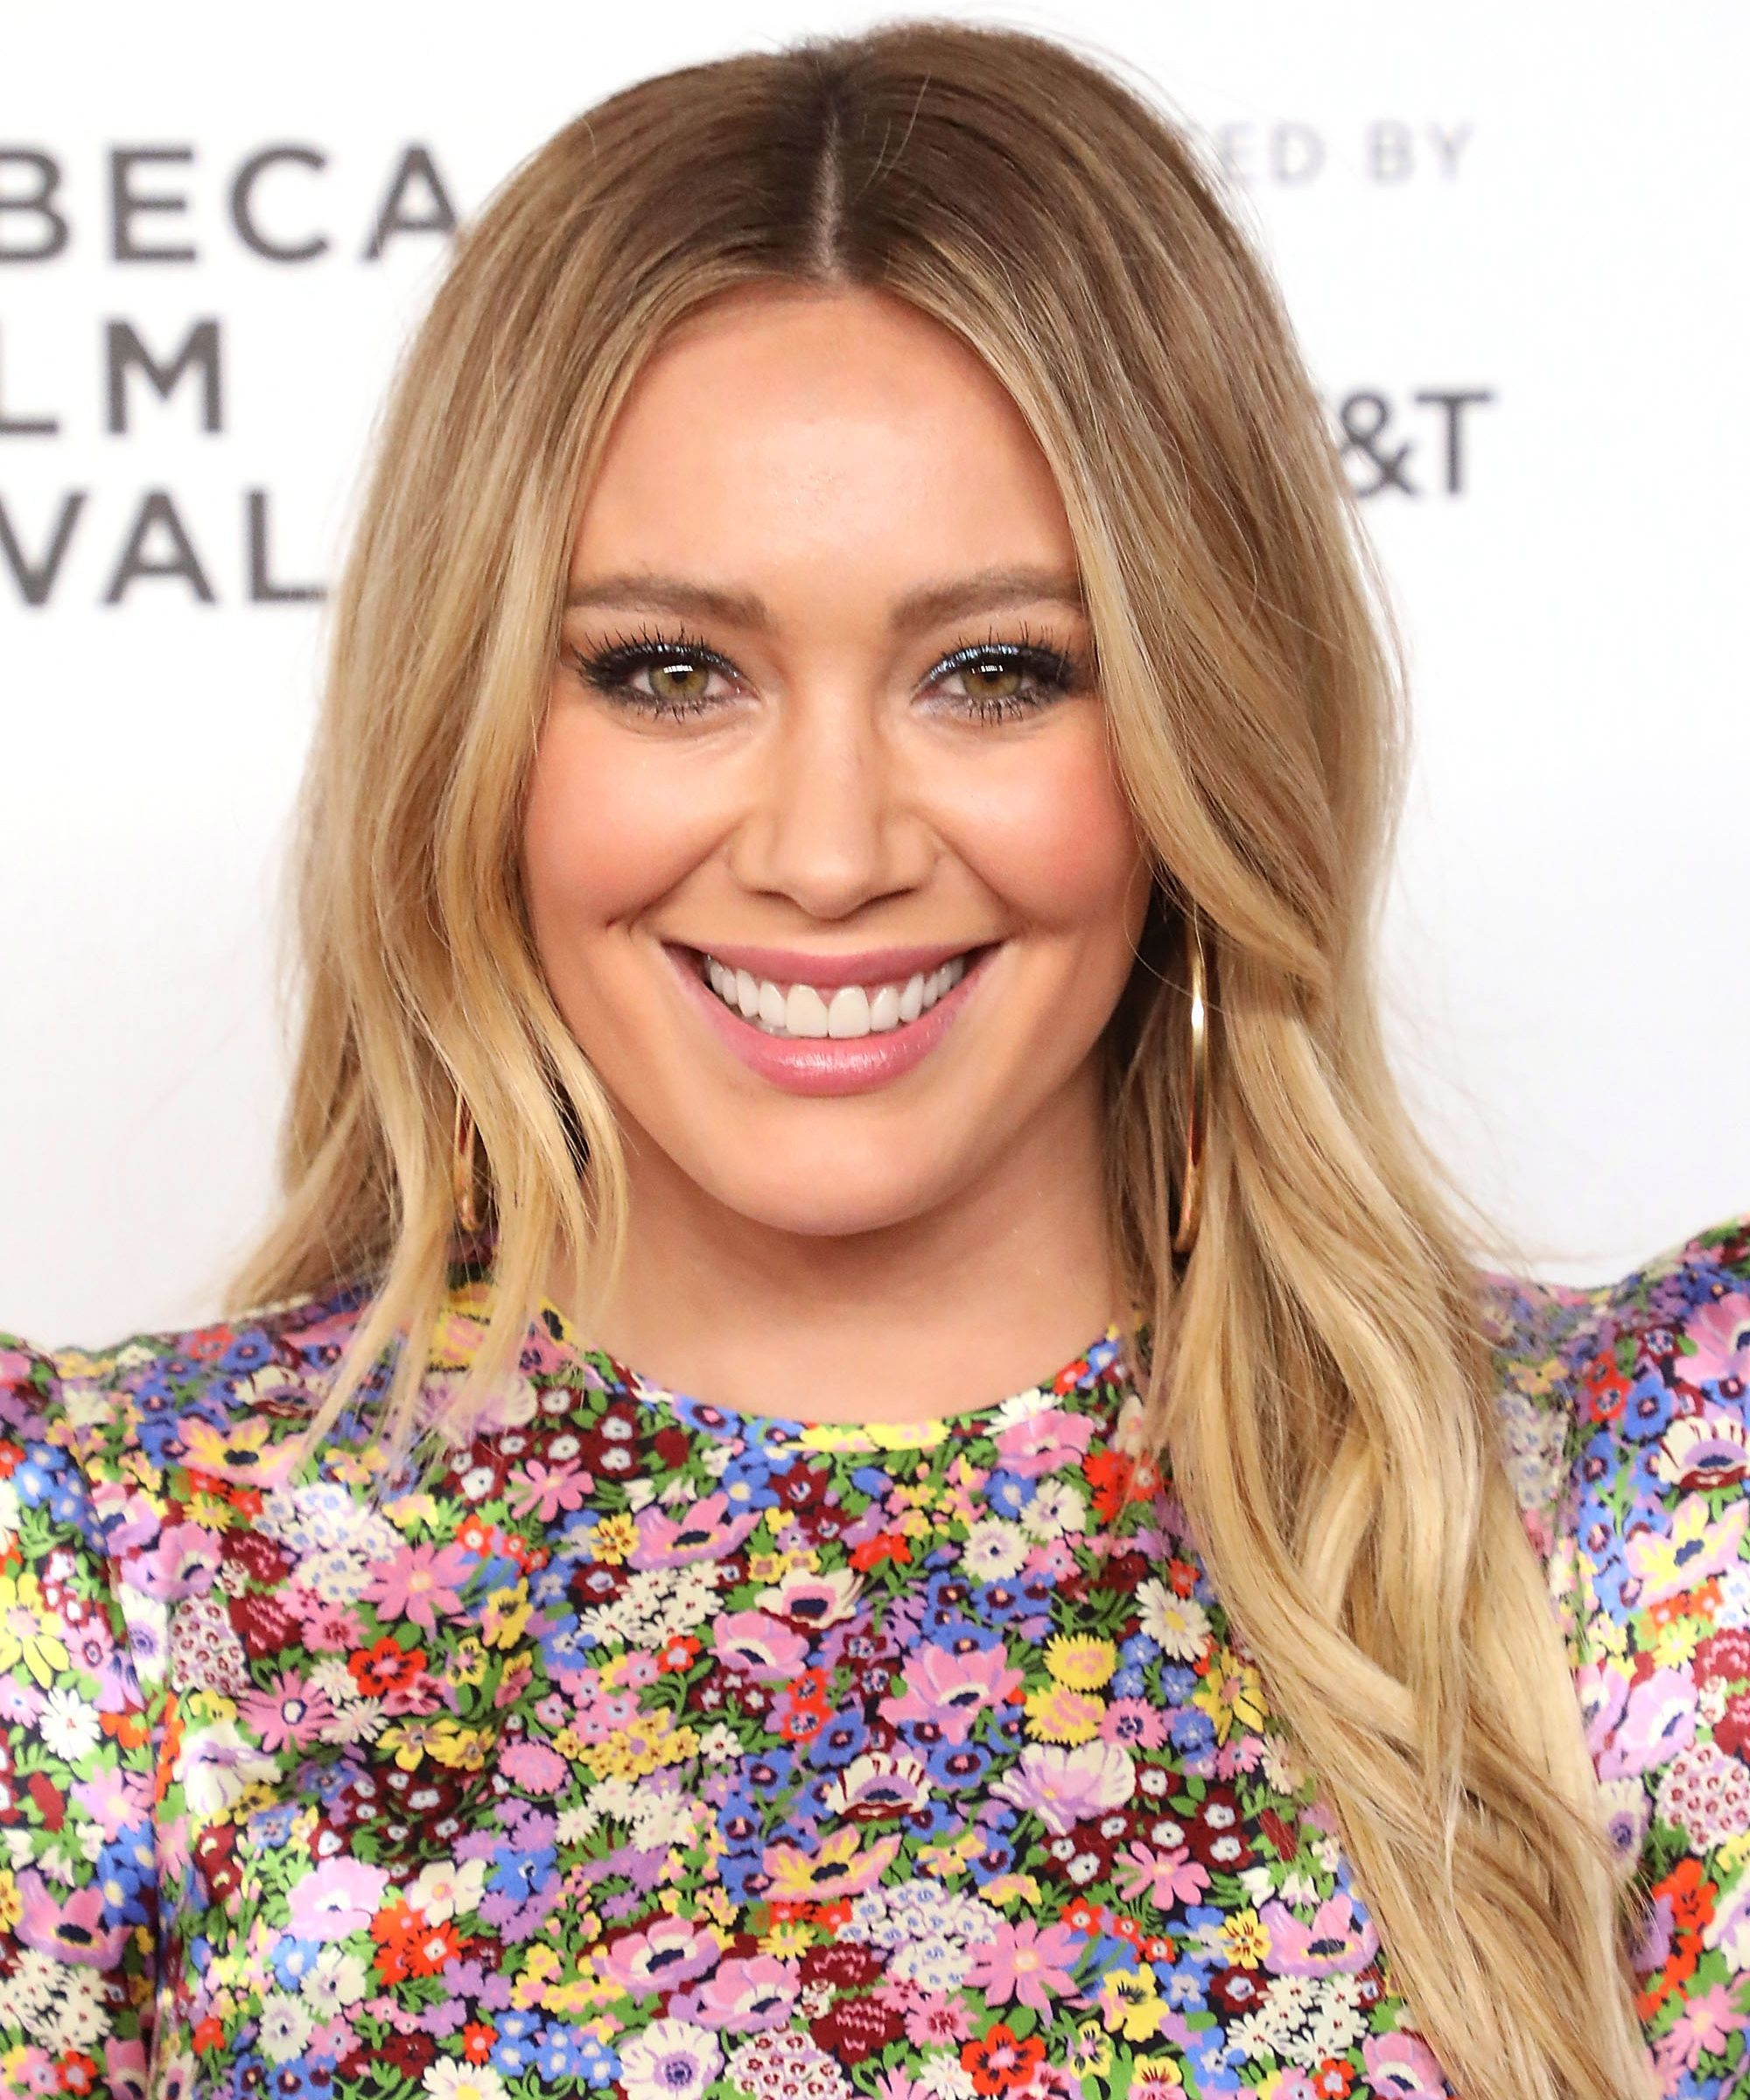 From Pink To Blue To White, Hilary Duff's Hair Evolution